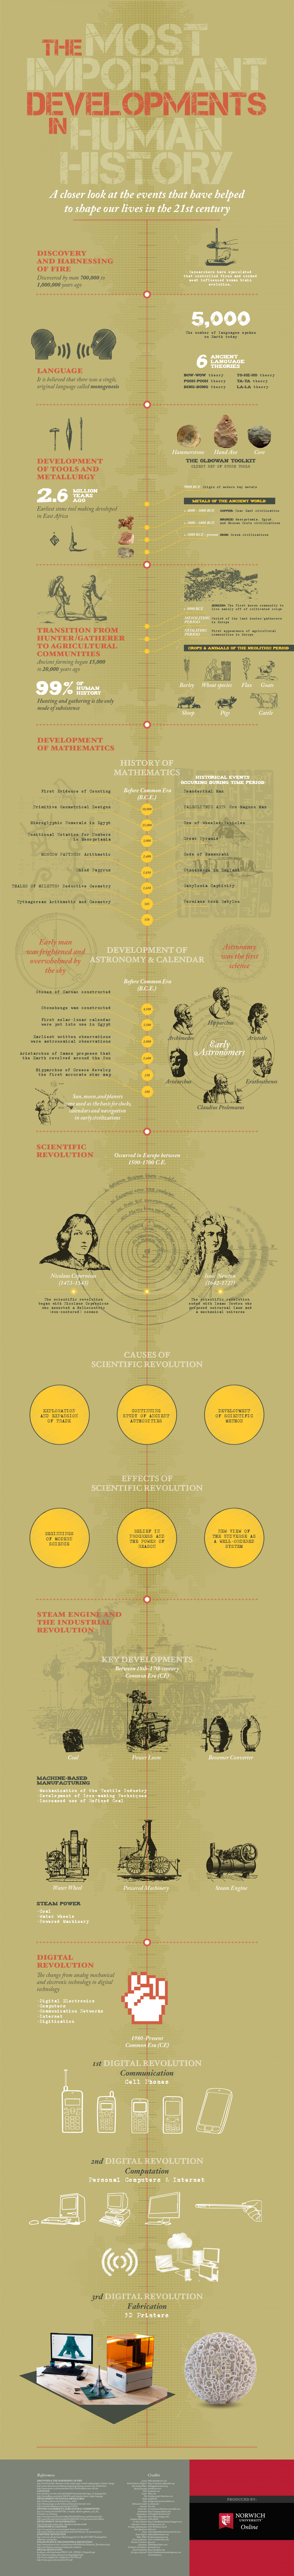 The Most Important Developments In Human History Infographic